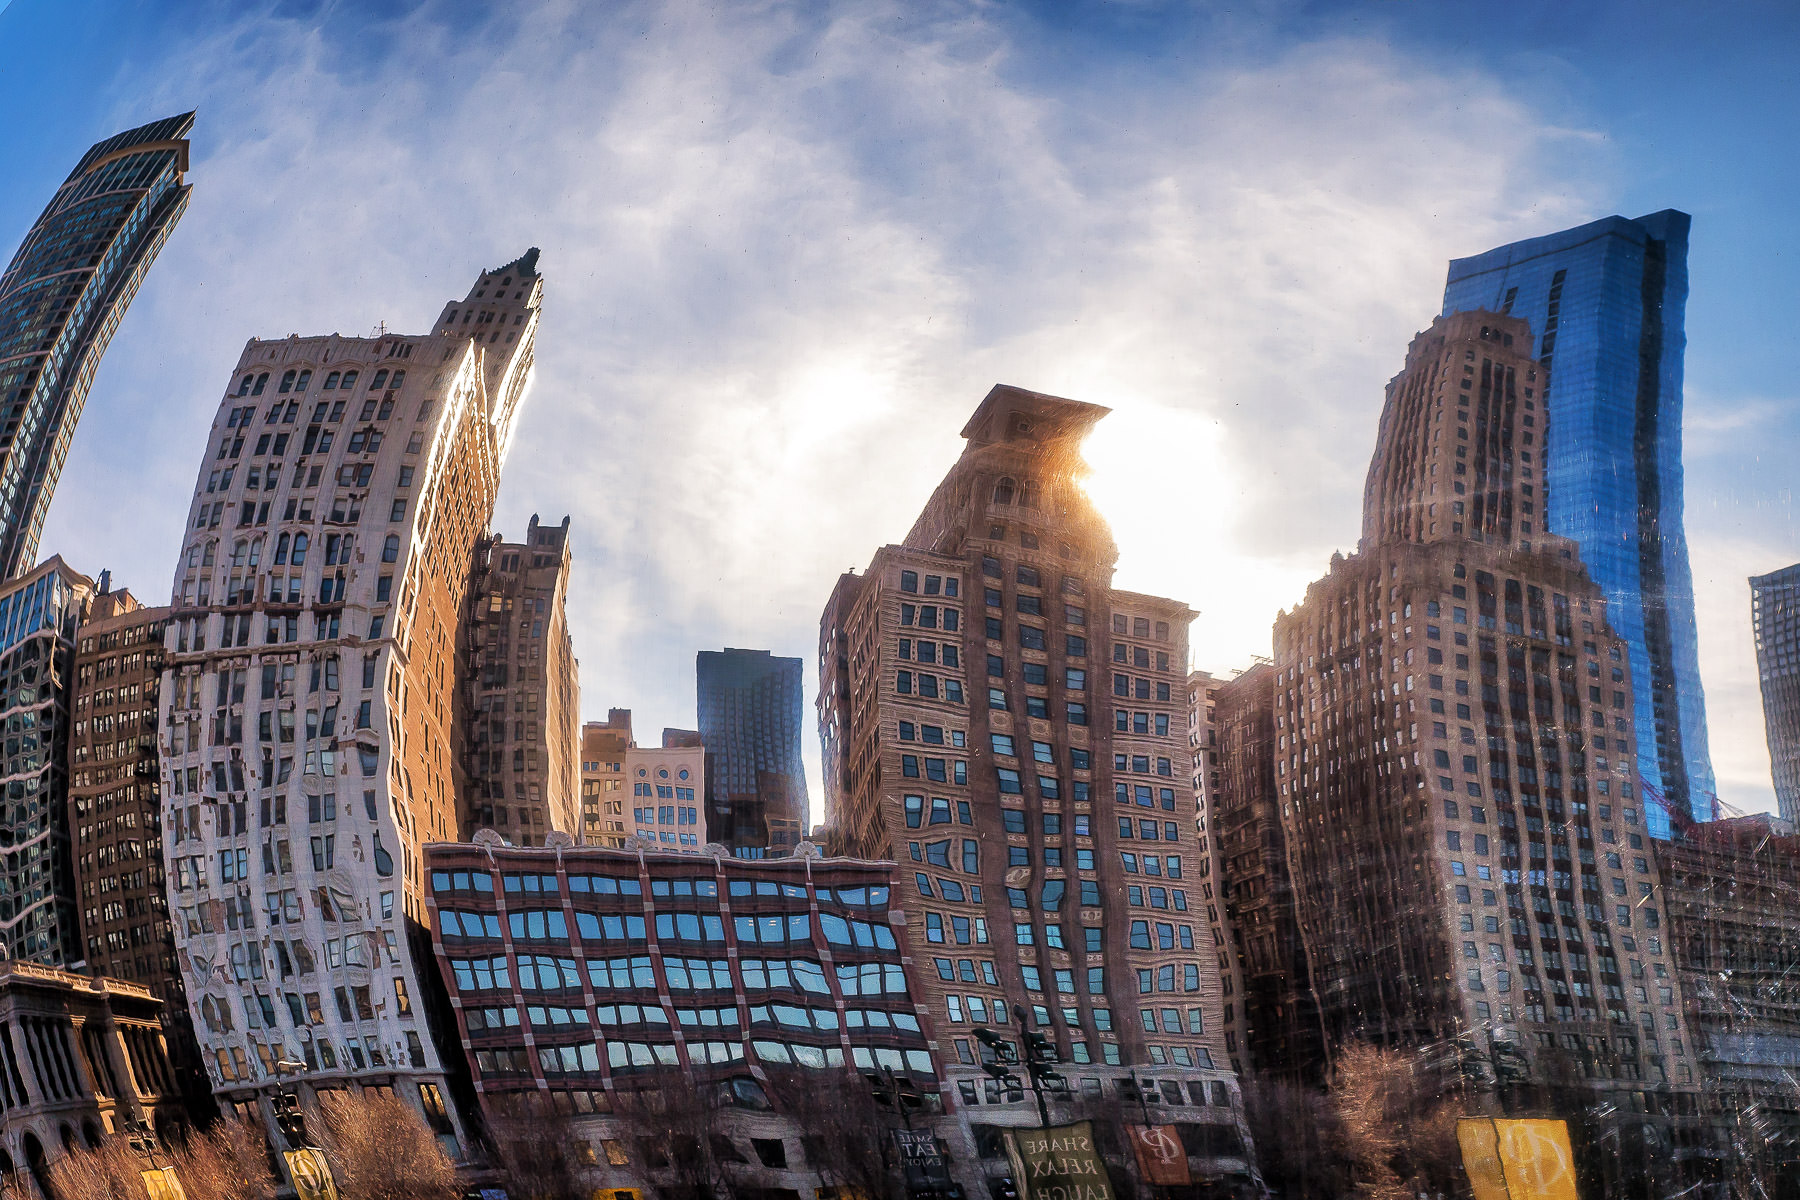 """A portion of Chicago's skyline is bent and twisted as it reflects in the polished steel skin of Anish Kapoor's Cloud Gate, colloquially known as """"The Bean"""", in Millennium Park."""